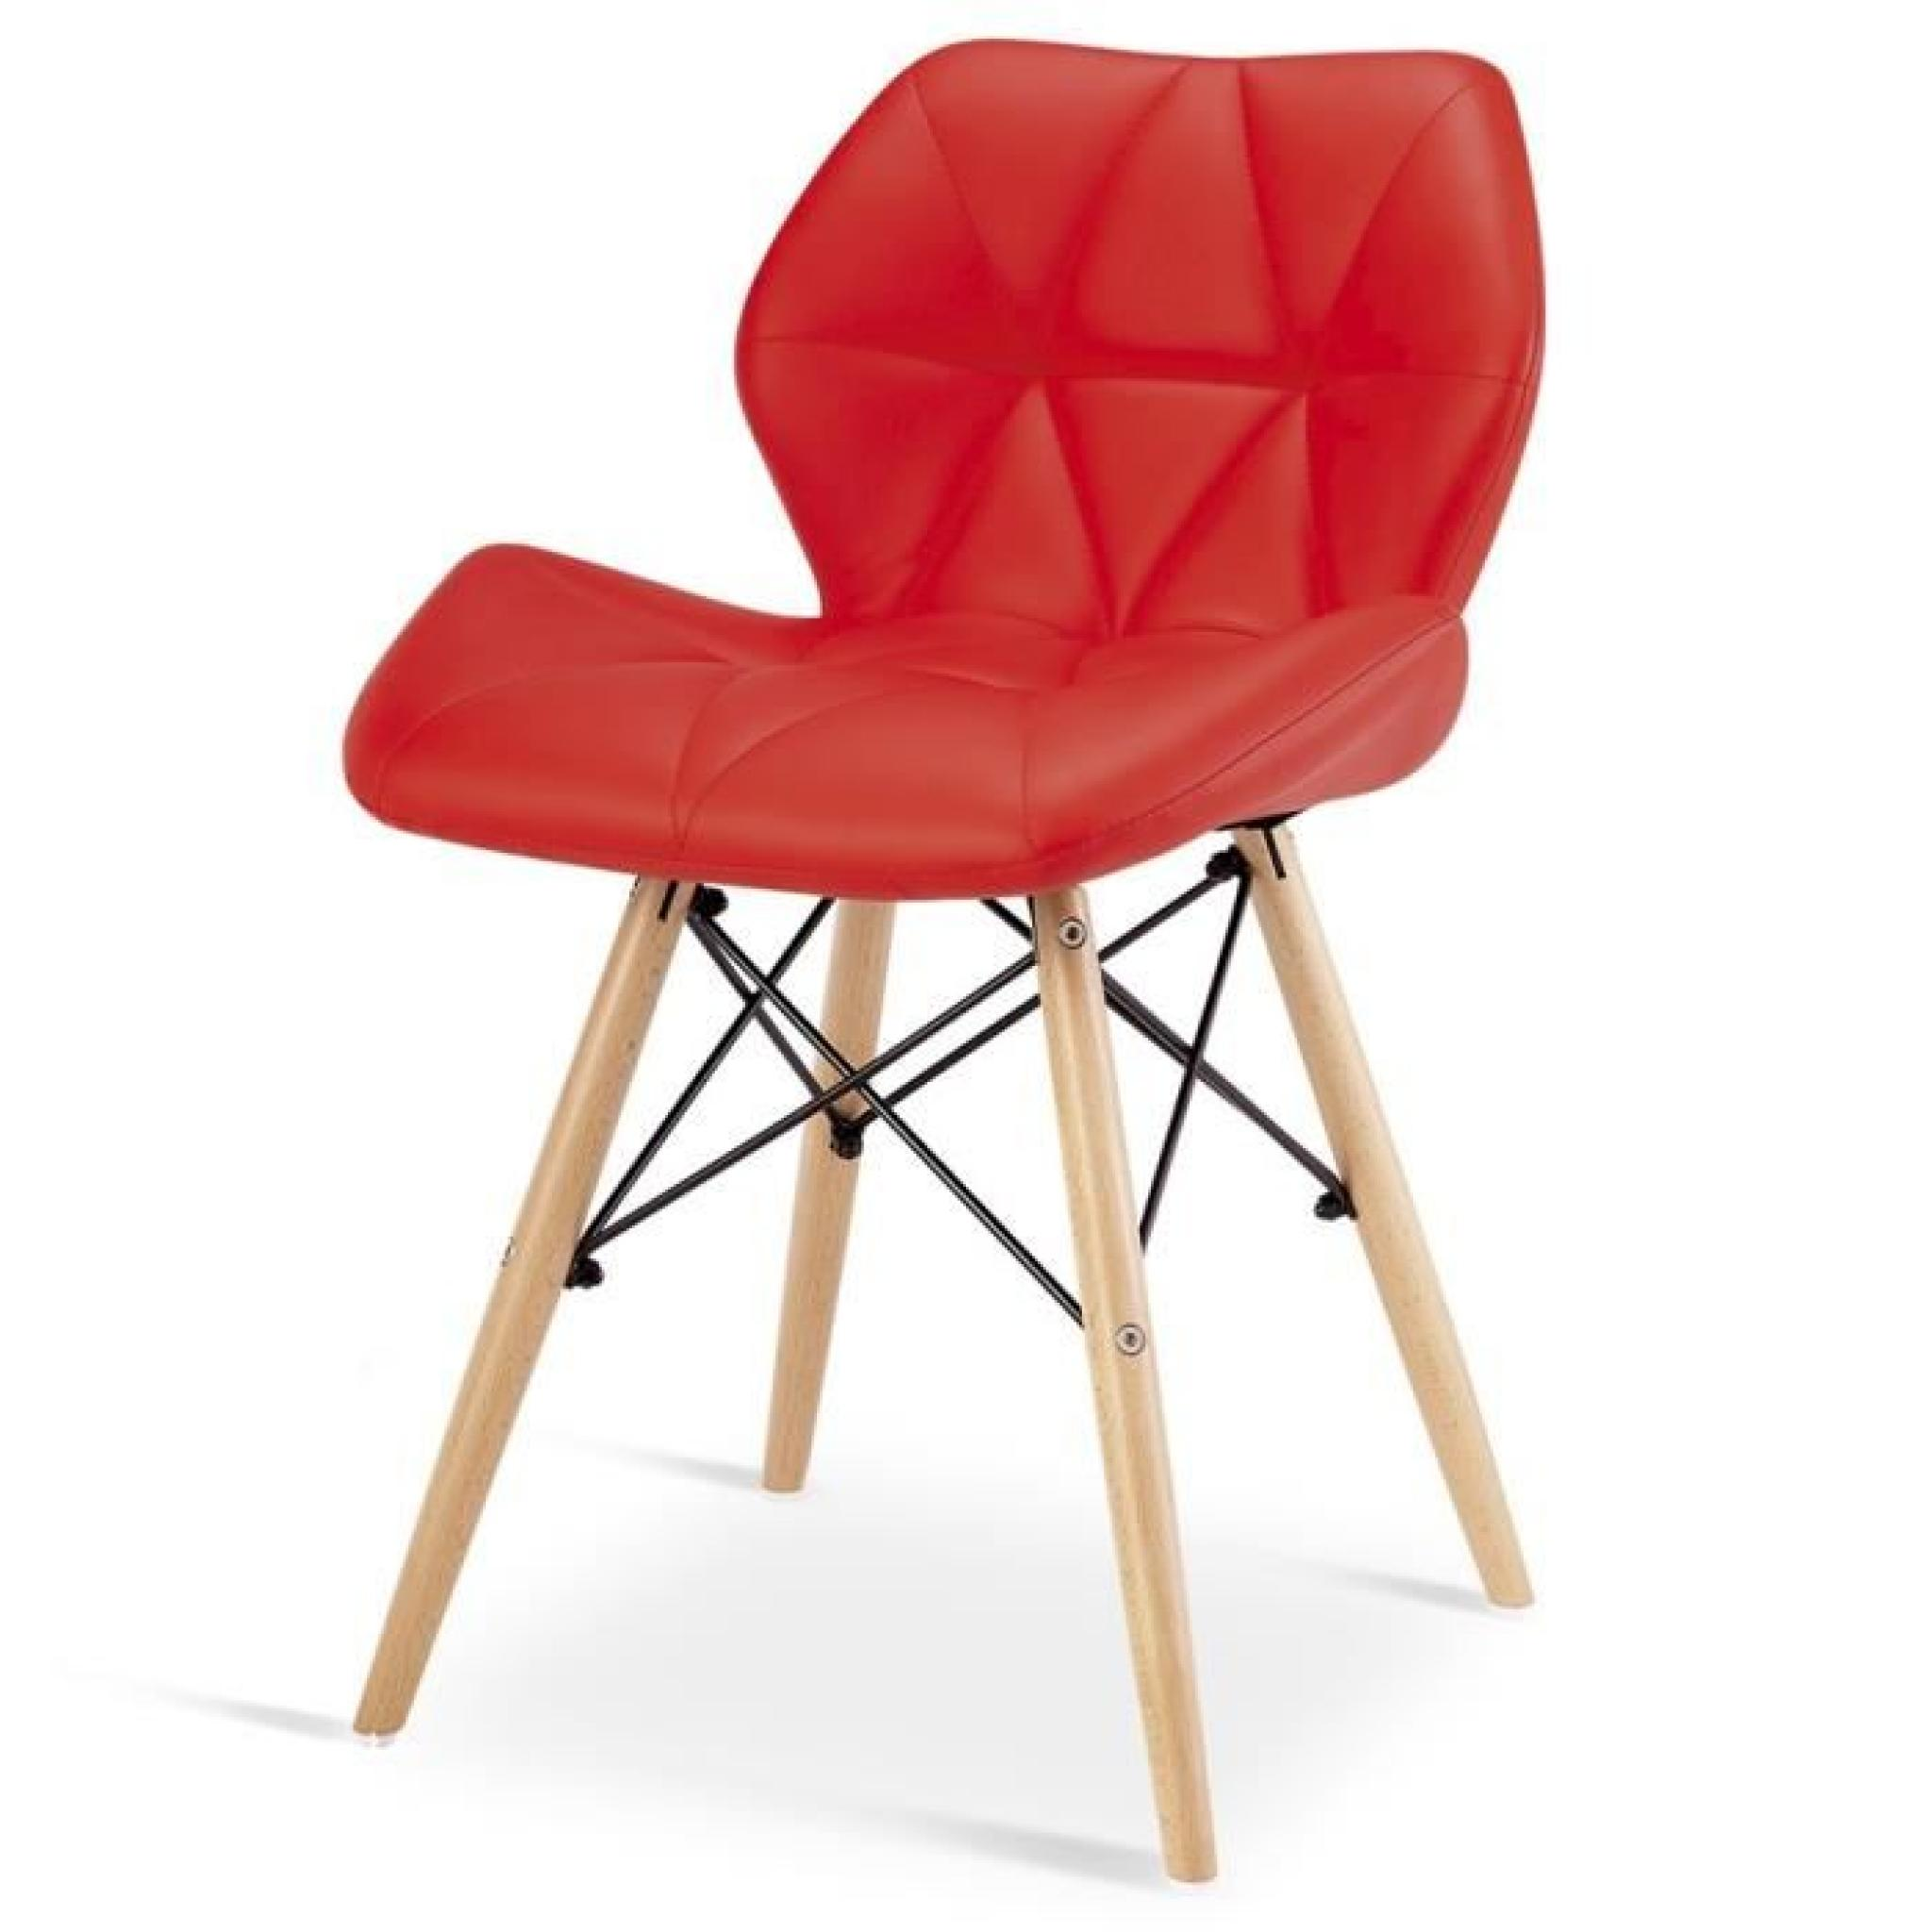 Chaise design pied bois maison design for Chaise fly rouge